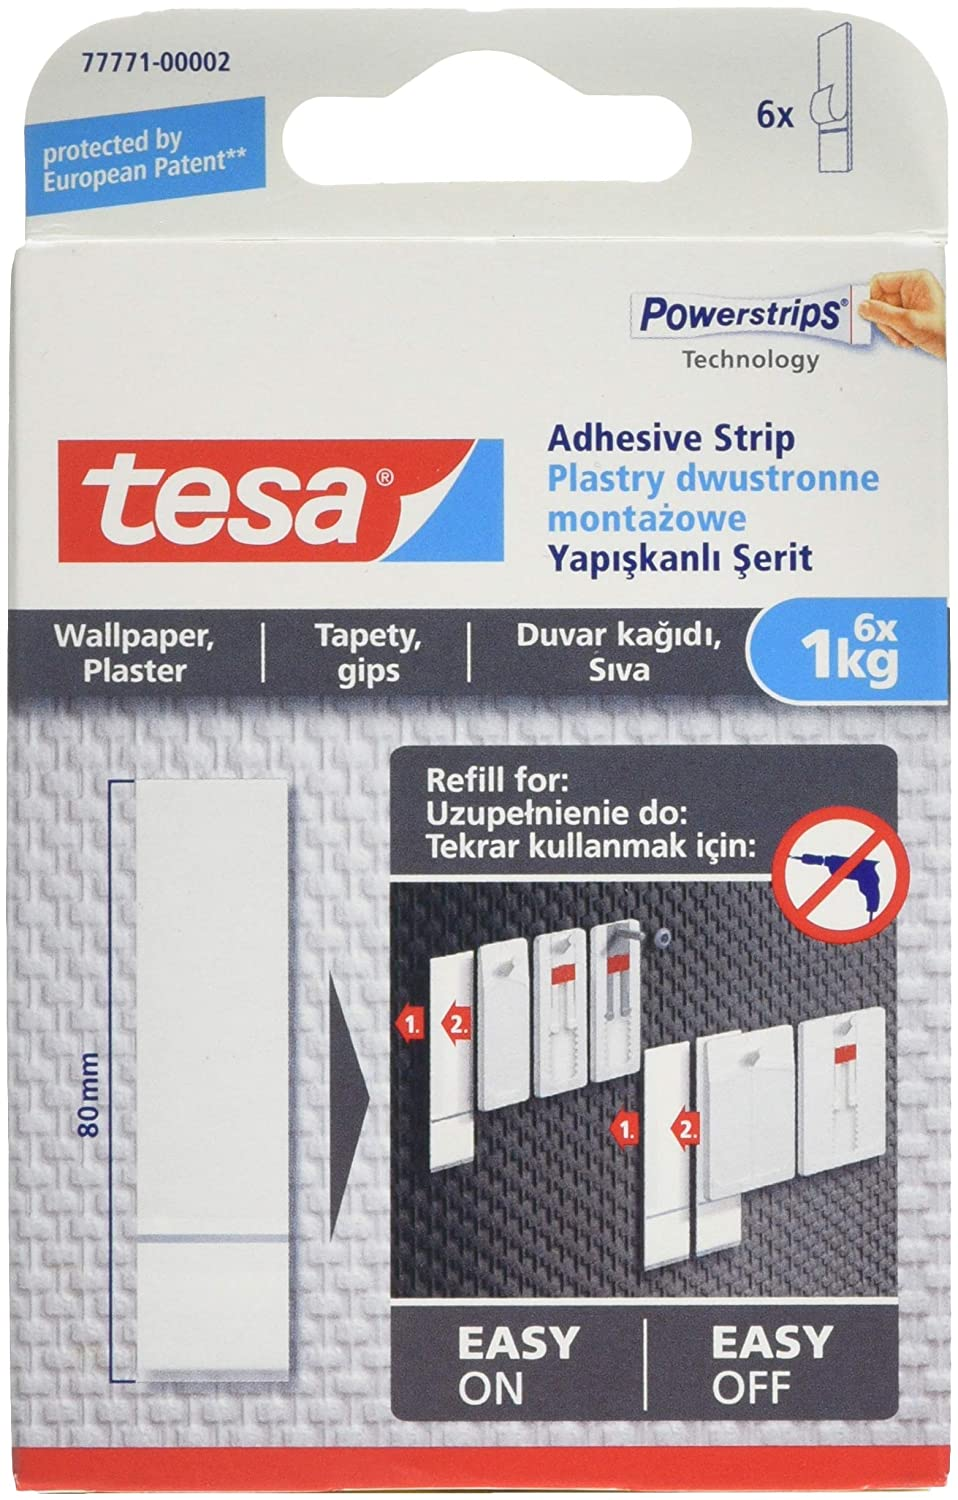 tesa 77770-00002-00 Removable Adhesive Strips for Picture Hanging on Wallpaper, White tesa UK